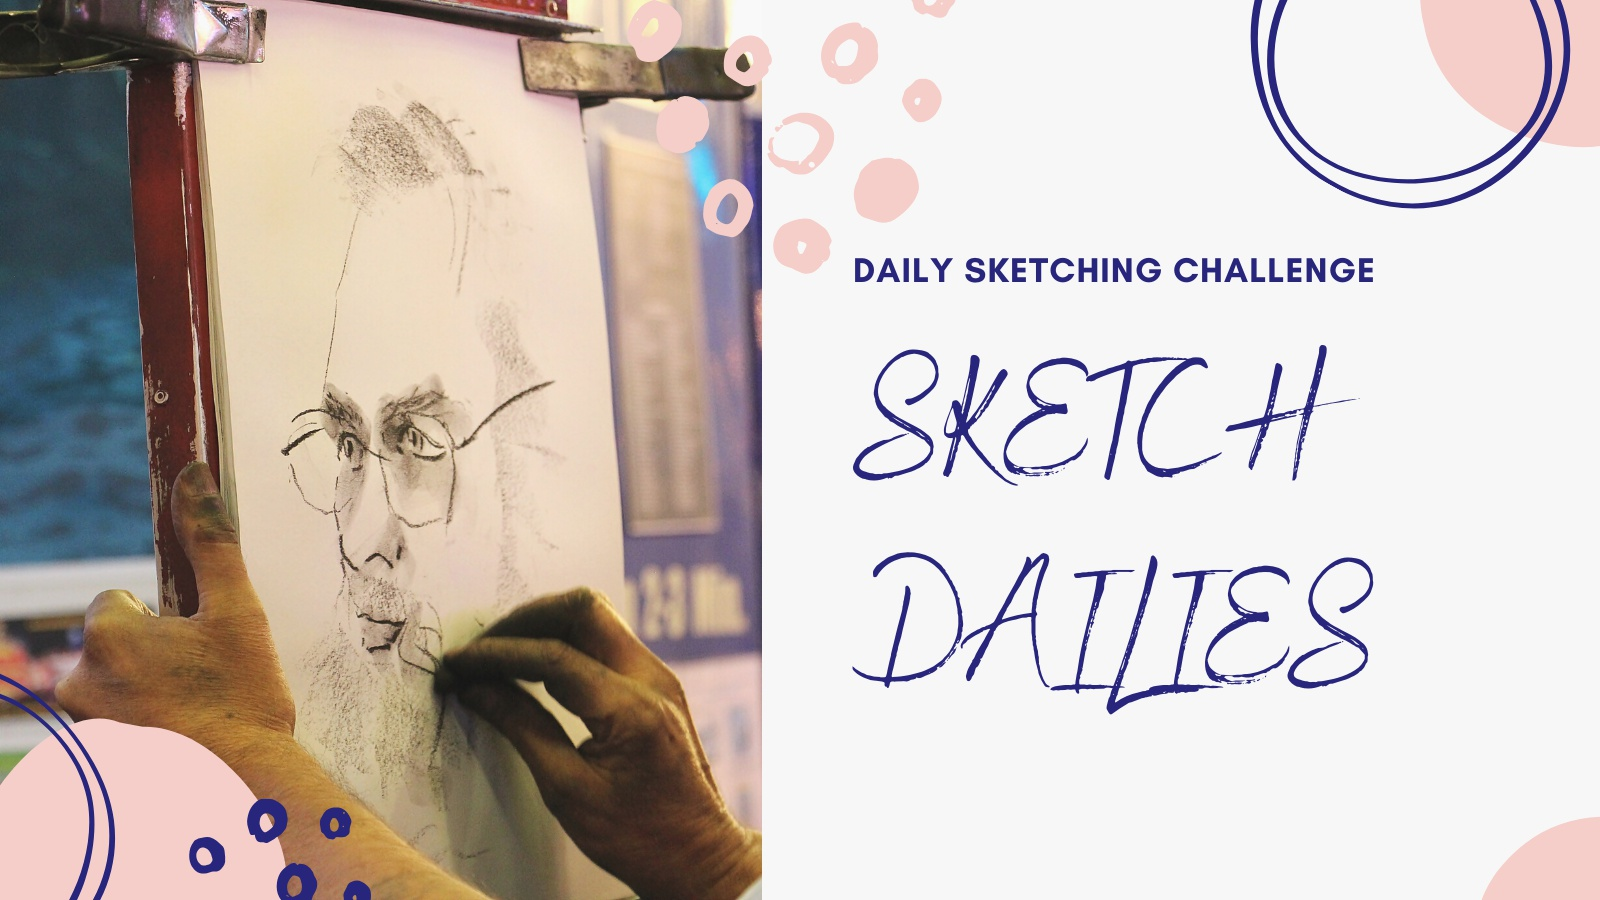 sketch-dailies-daily-sketching-challenge